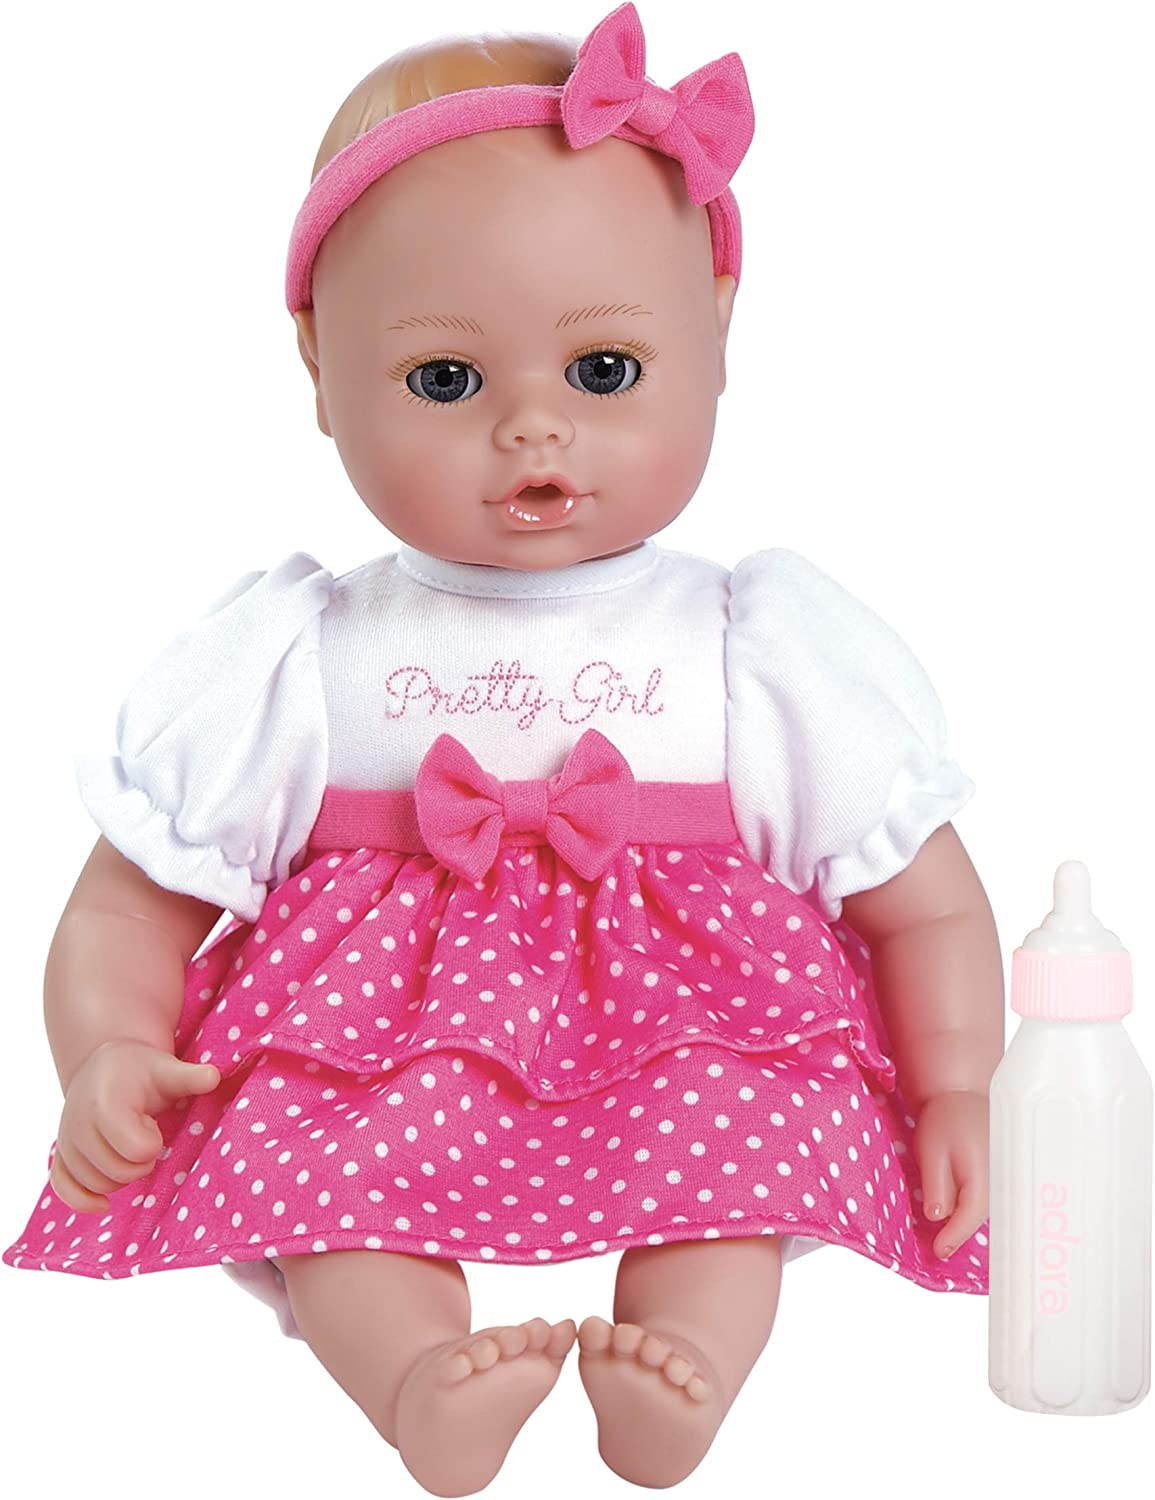 Amazon.com: Adora Playtime Baby Pretty Girl Vinyl 13 Girl Weighted Washable  Cuddly Snuggle Soft Toy Play Doll Gift Set with Open/Close Eyes for  Children 1+ Includes Bottle: Toys & Games